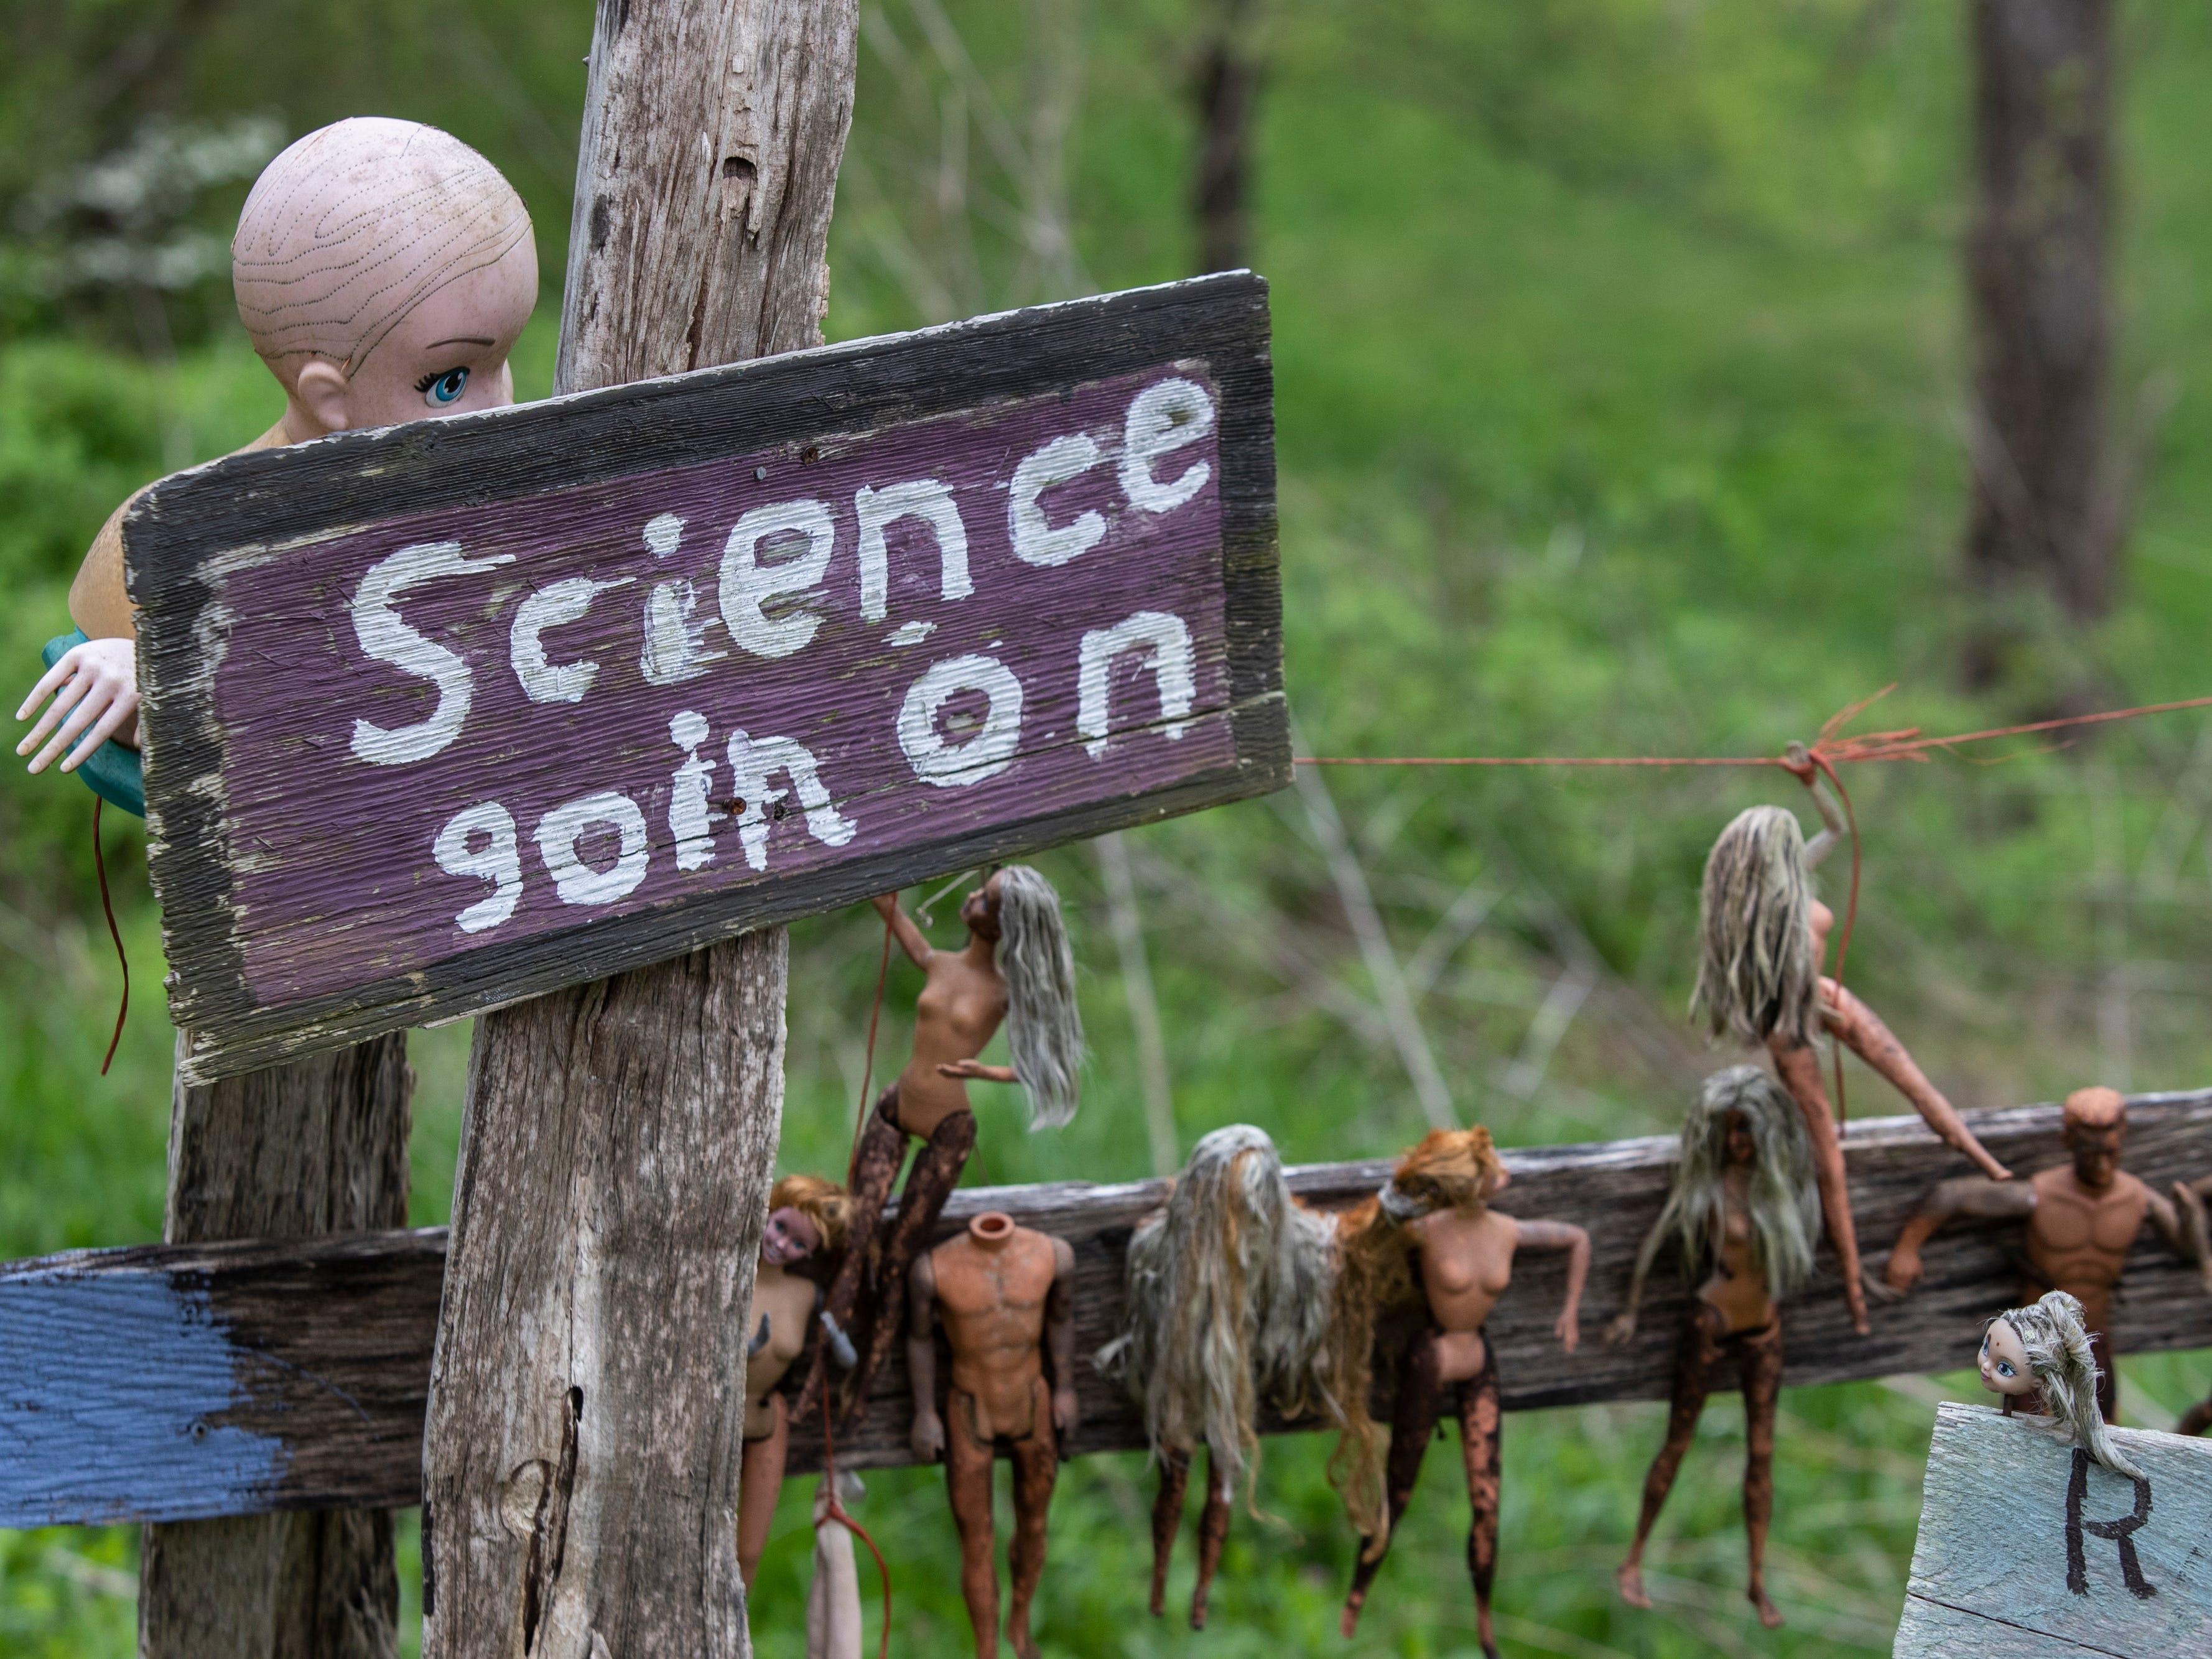 A sign indicating the scientific research is in progress at the Home for Wayward Babydolls. April 19, 2019